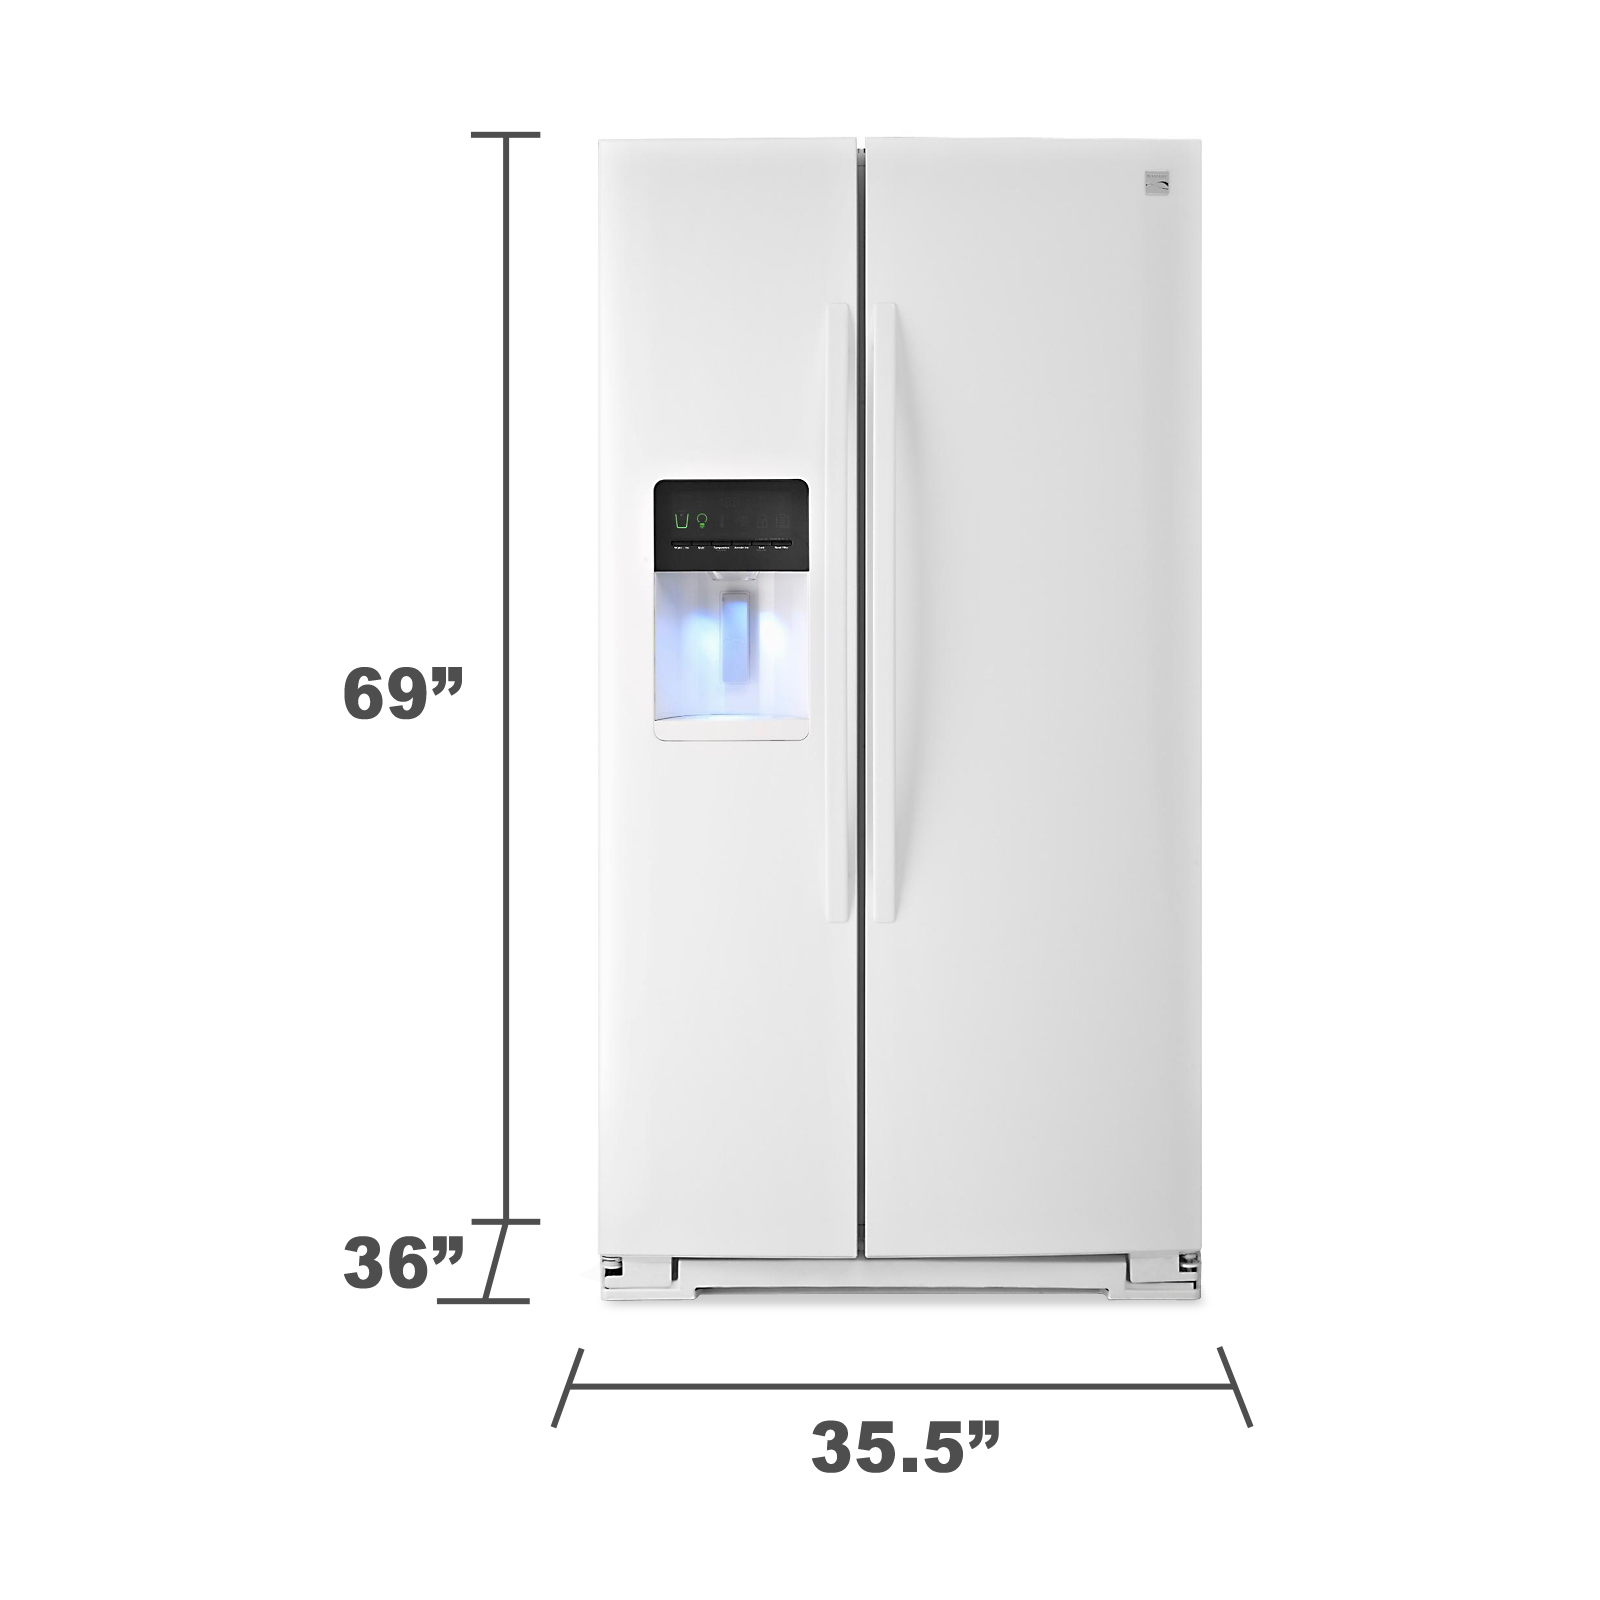 Kenmore 51132 26 cu. ft. Side-by-Side Refrigerator - White